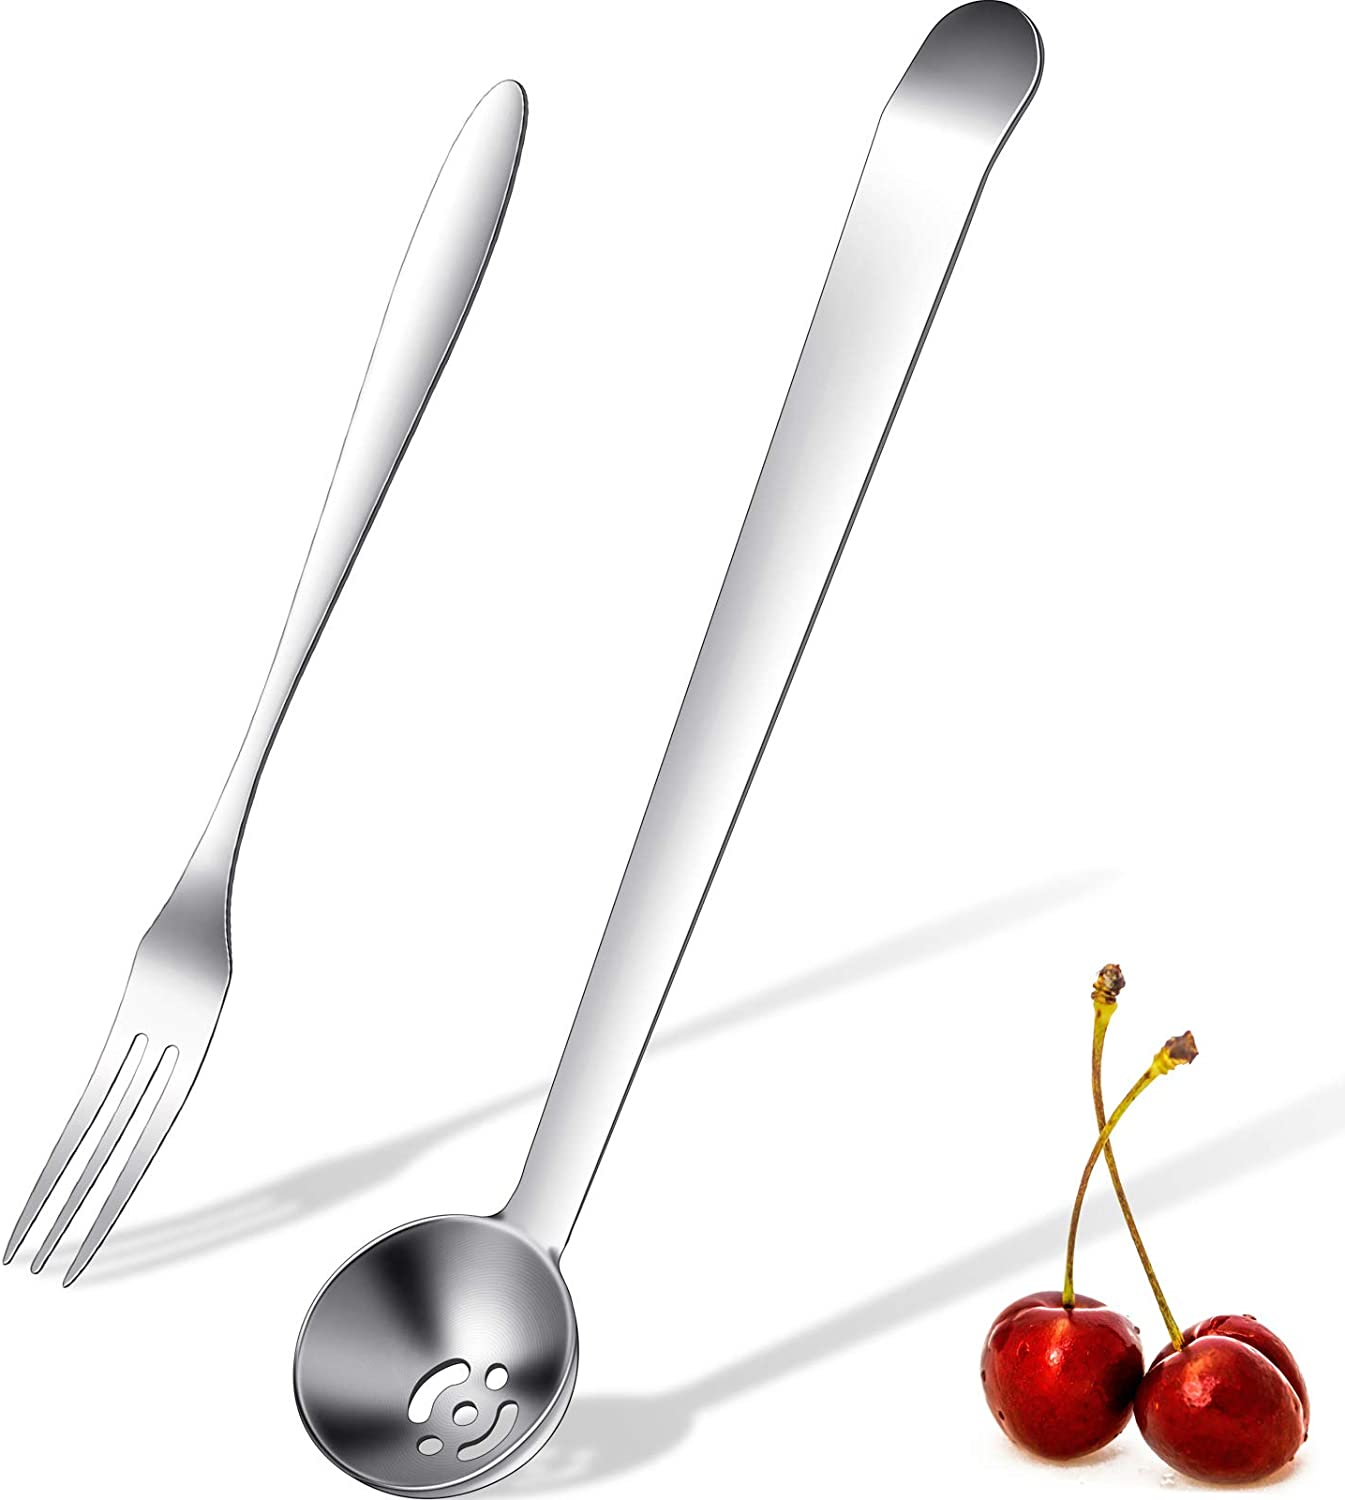 2 Pieces Olive Spoon Strainer Stainless Steel Pickle Forks Set Pick Jar Spoon and Fork Cherry Spoon with Drain Hole Jar Serving Spoon Tools for Onion, Caper Slotted Spoon